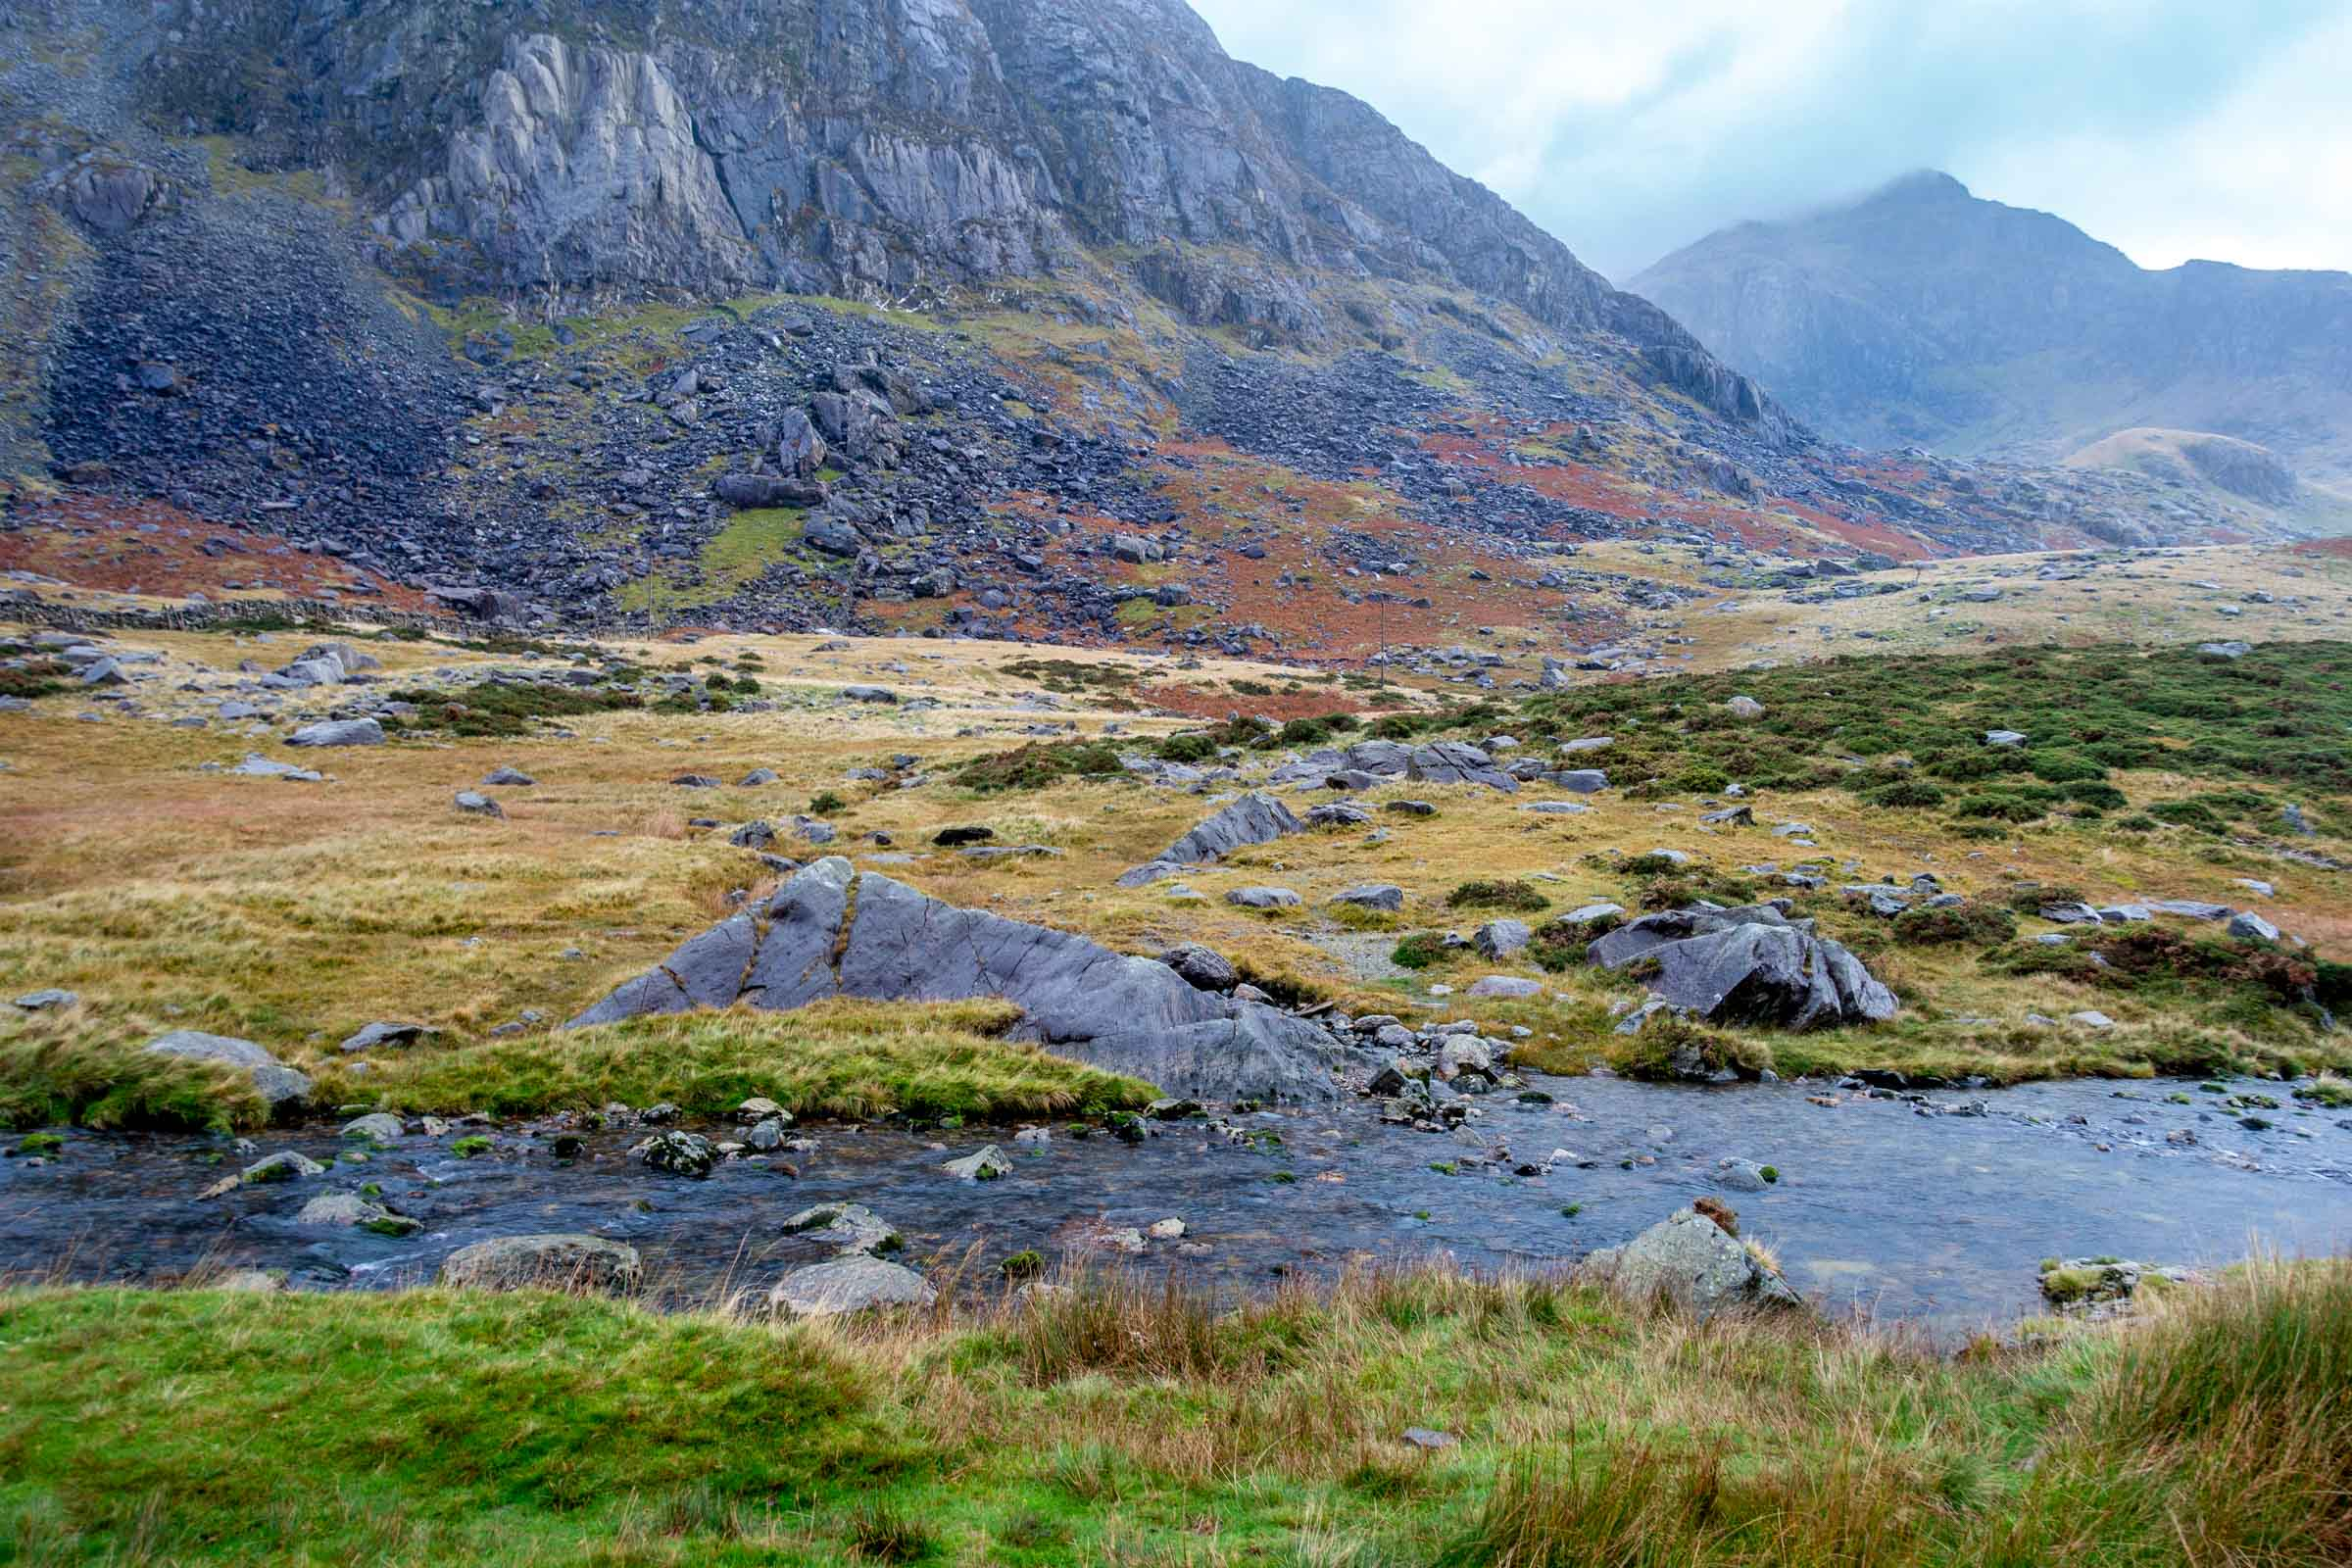 Mountains and stream in Snowdonia National Park in Wales